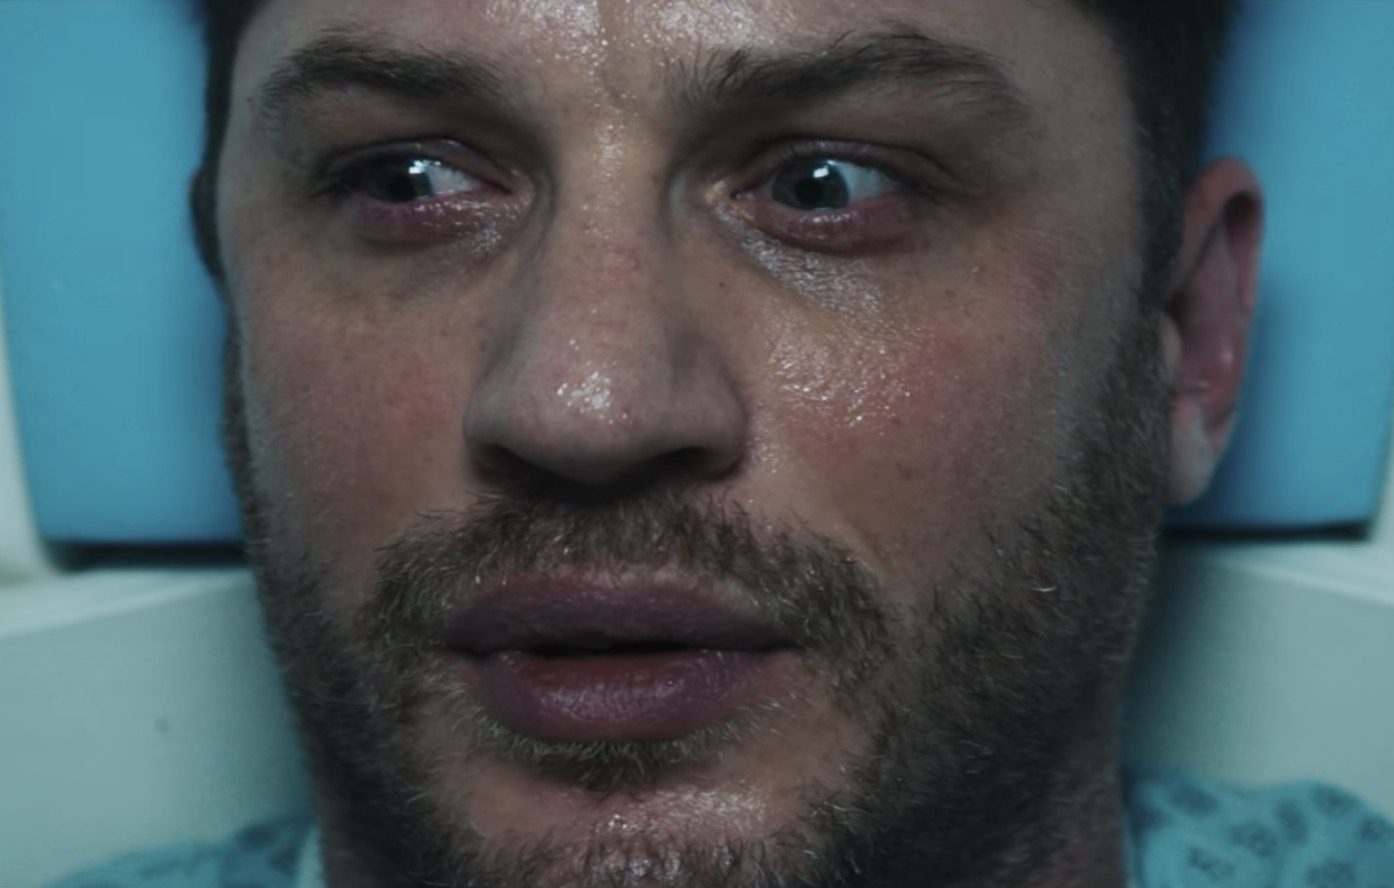 Here's the teaser trailer for Venom, starring Tom Hardy